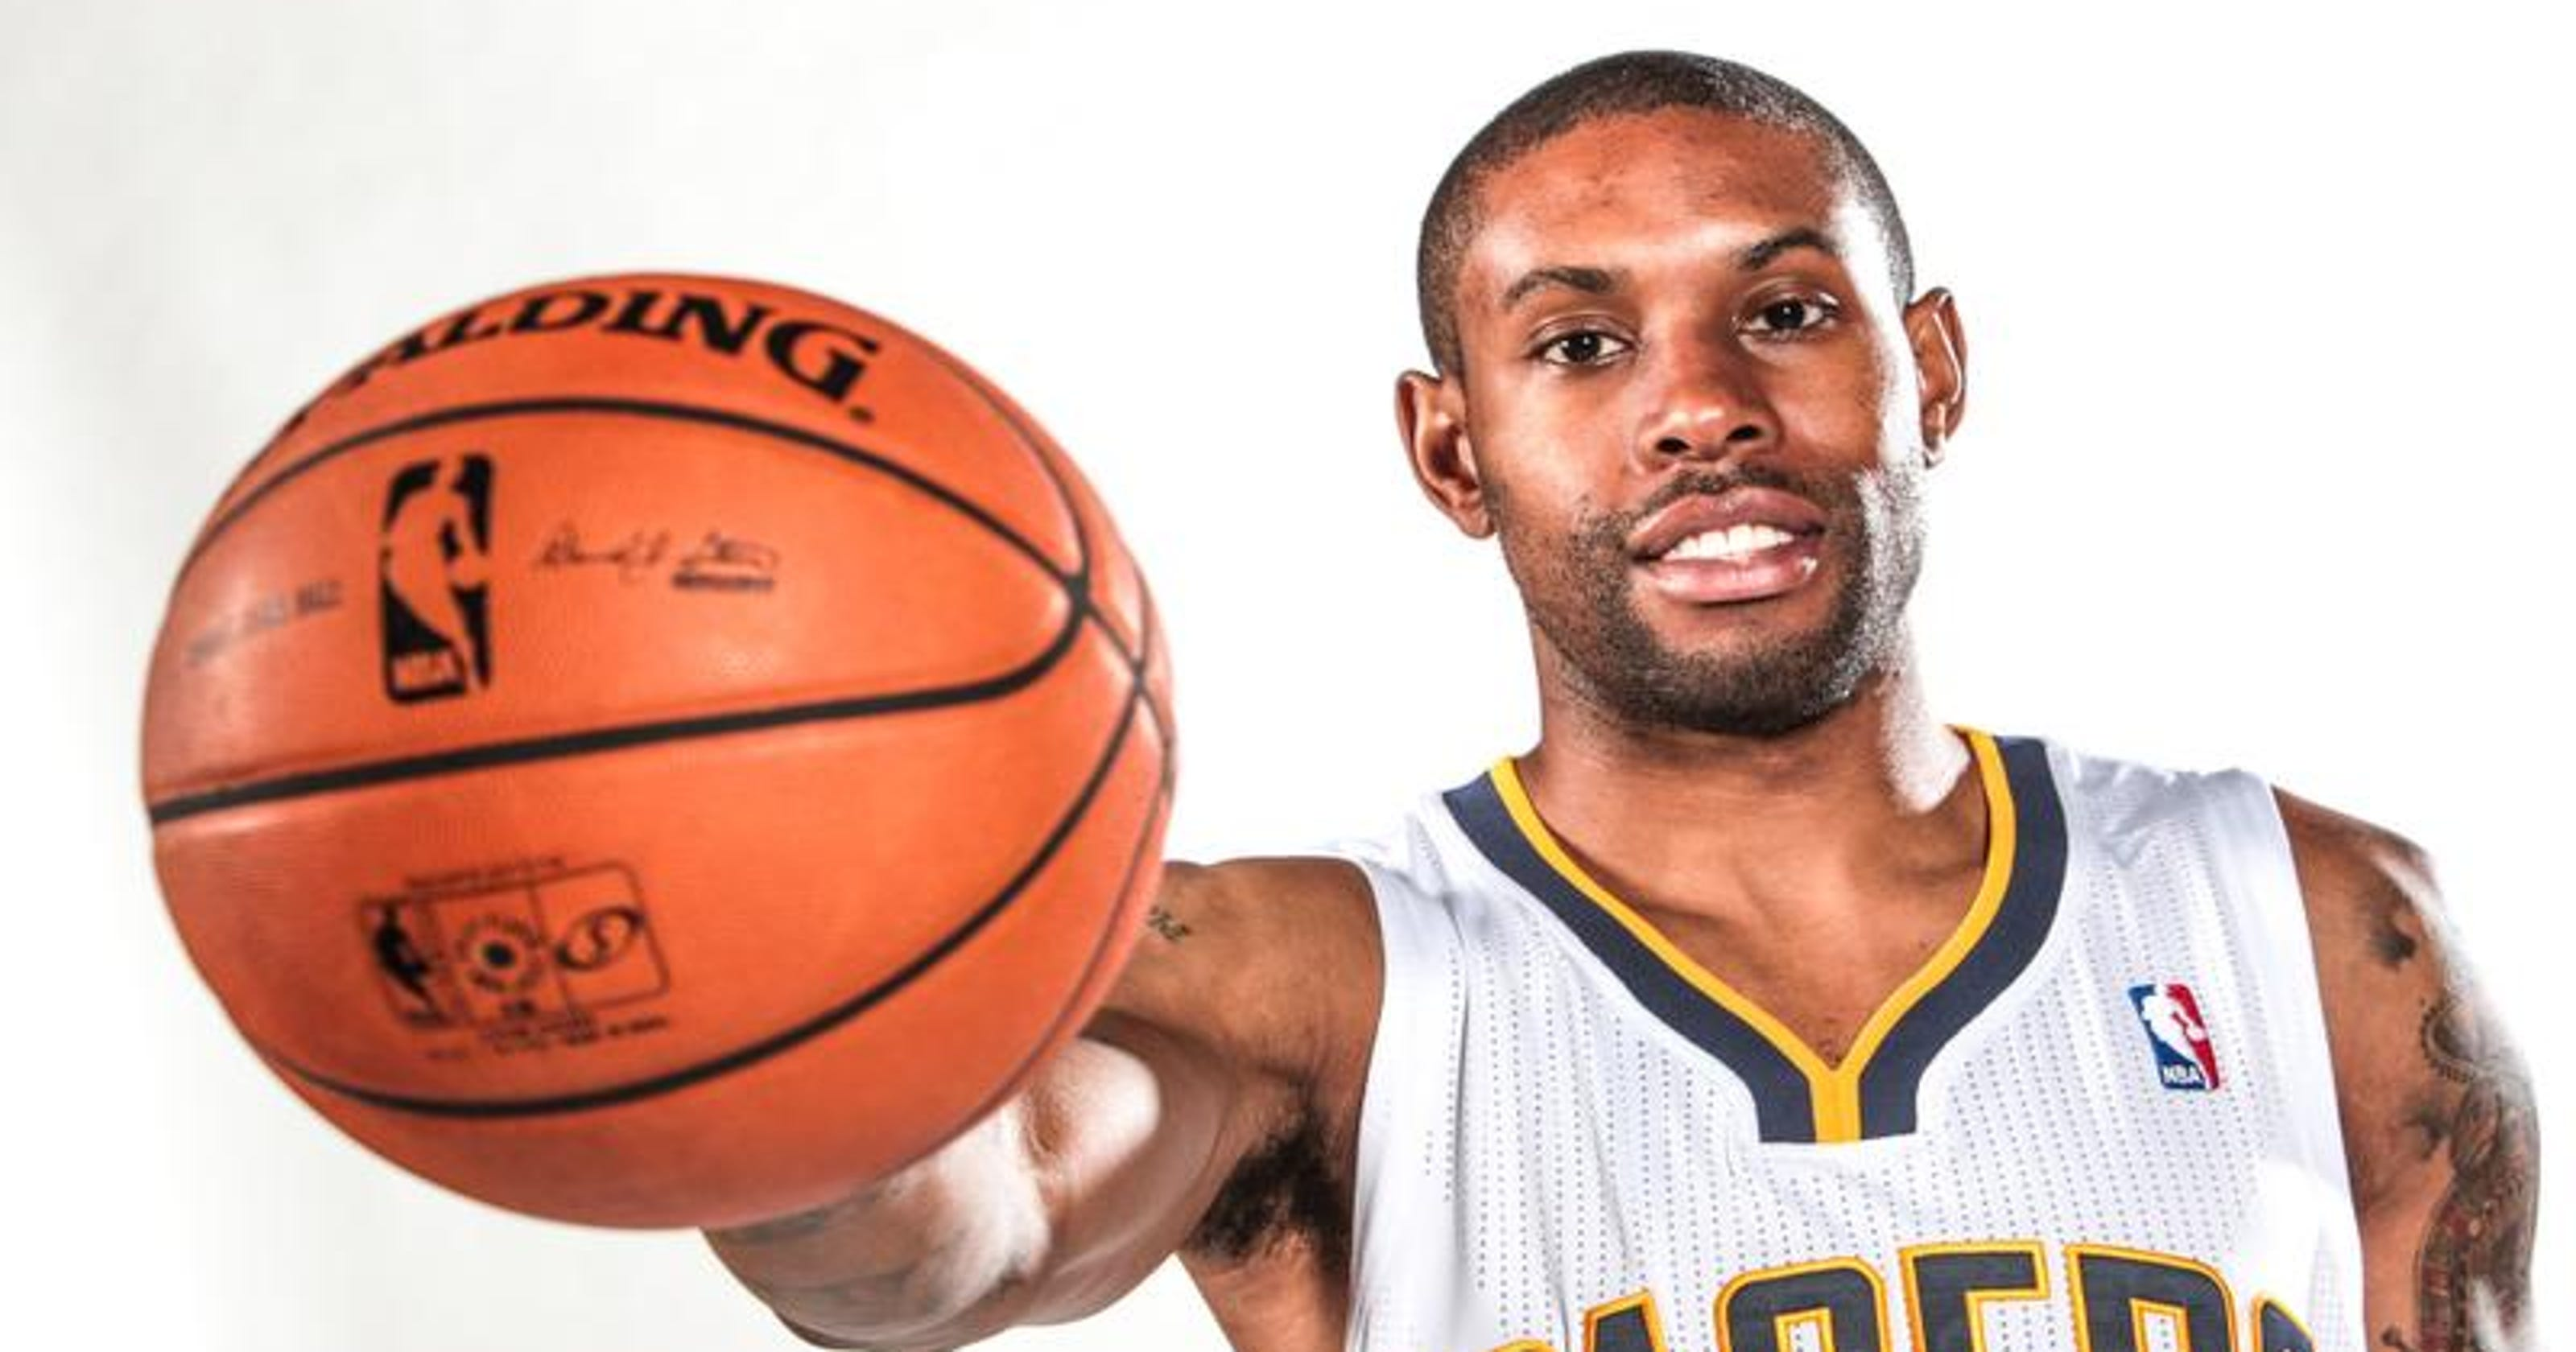 Experience coming off the bench led Indiana Pacers to C.J. Watson b3e138830